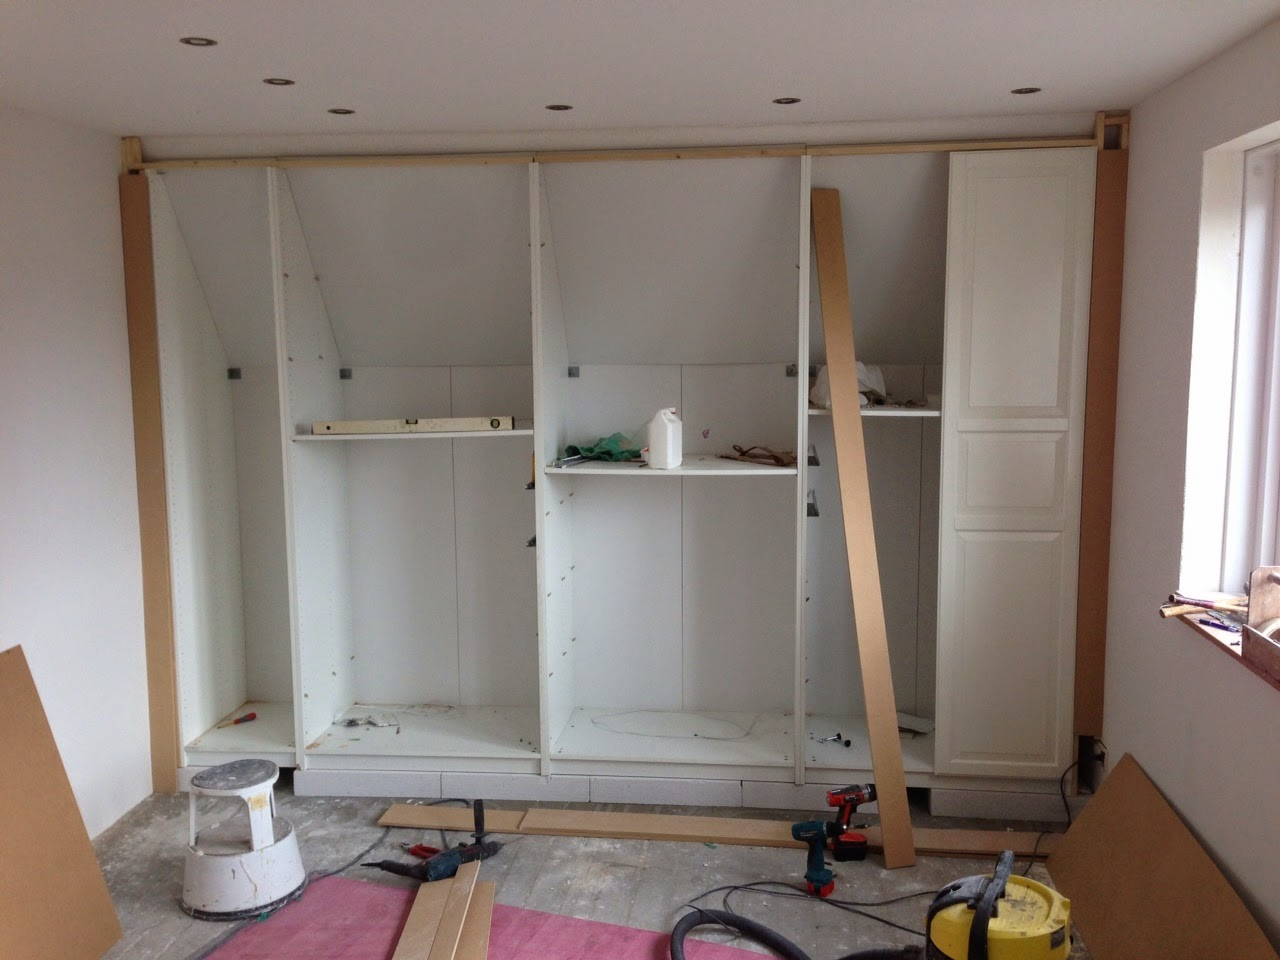 Hoekkast Ikea Pax Fully Functional Ikea Fitted Wardrobe For Sloping Ceiling Ikea